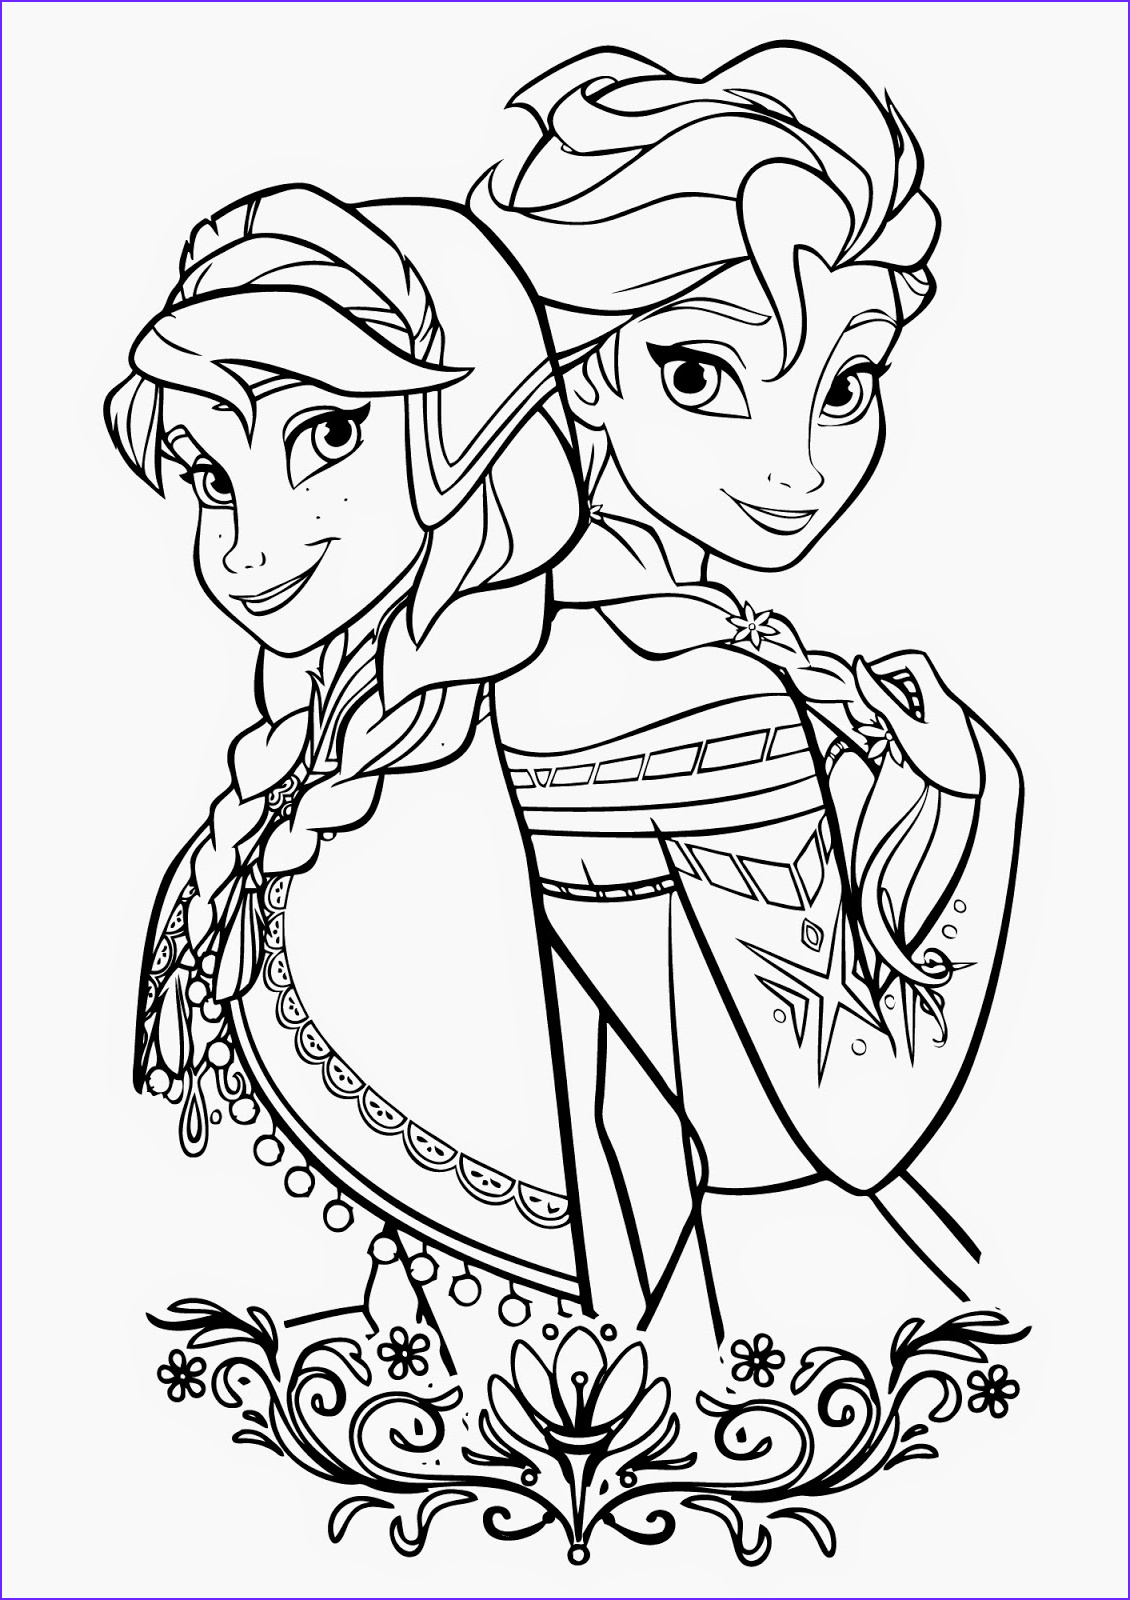 Free Frozen Coloring Pages Luxury Stock 15 Beautiful Disney Frozen Coloring Pages Free Instant